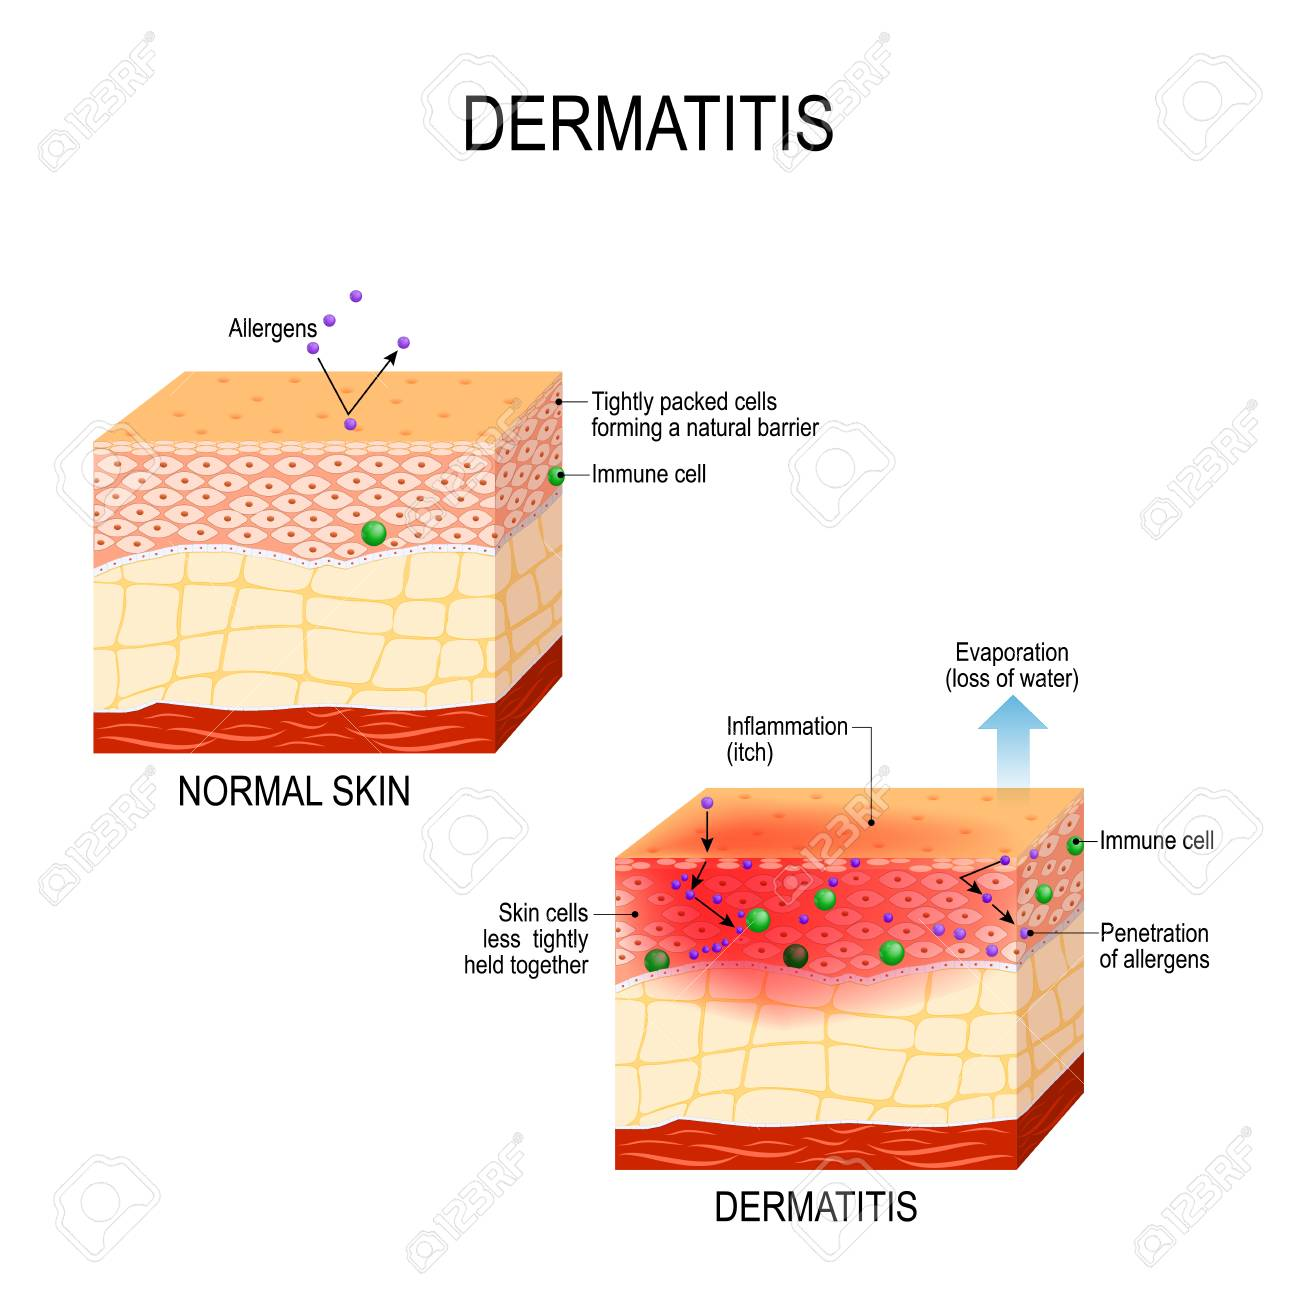 Atopic dermatitis (atopic eczema)  Healthy skin and cross-section